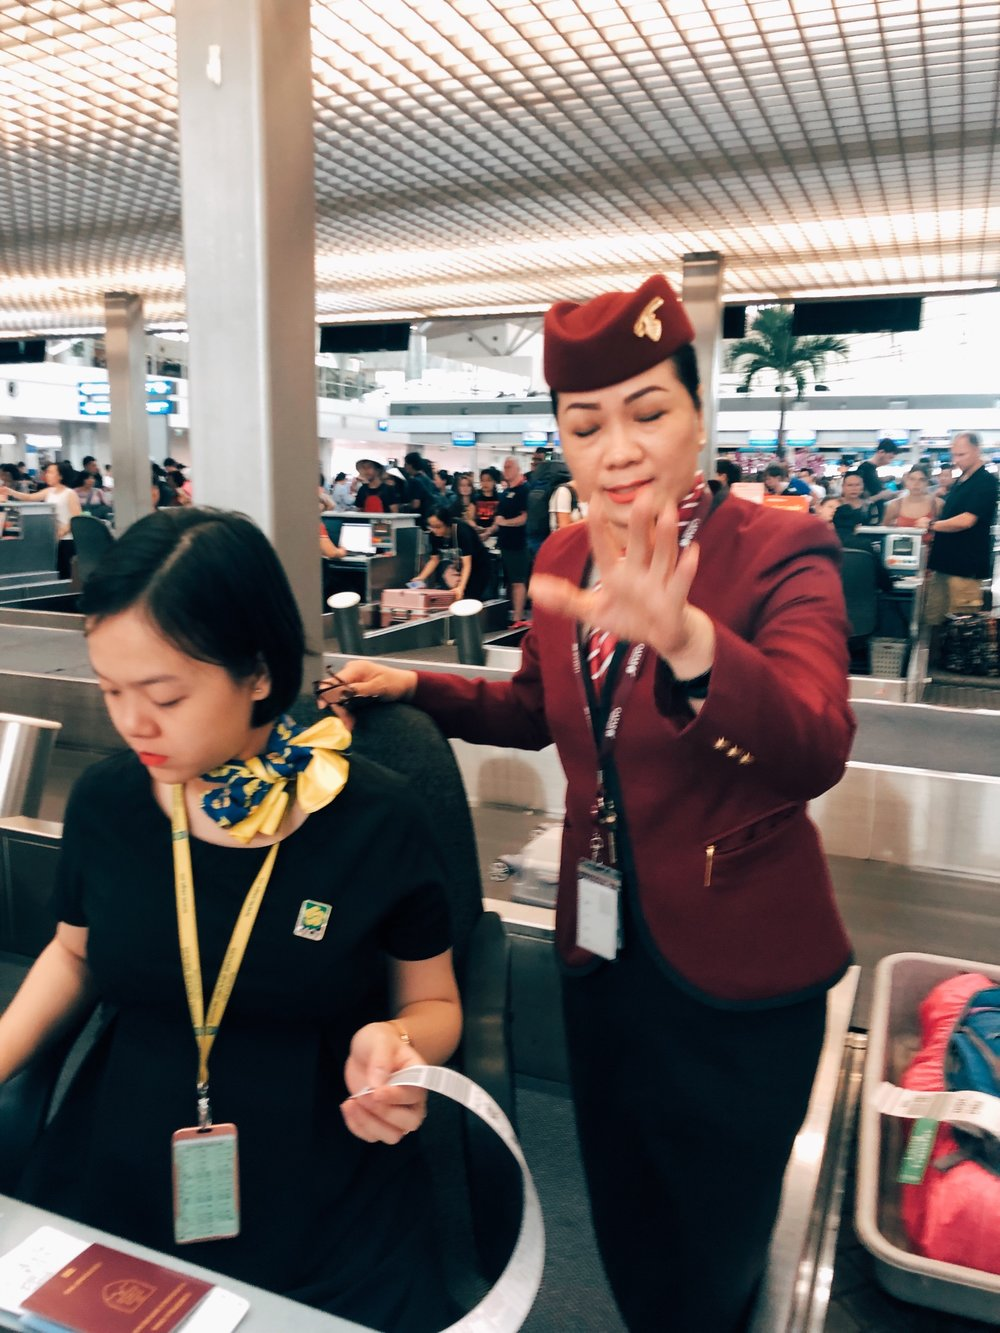 Very bad experience with Qatar Airways representative at Ho Chi Minh City Airport